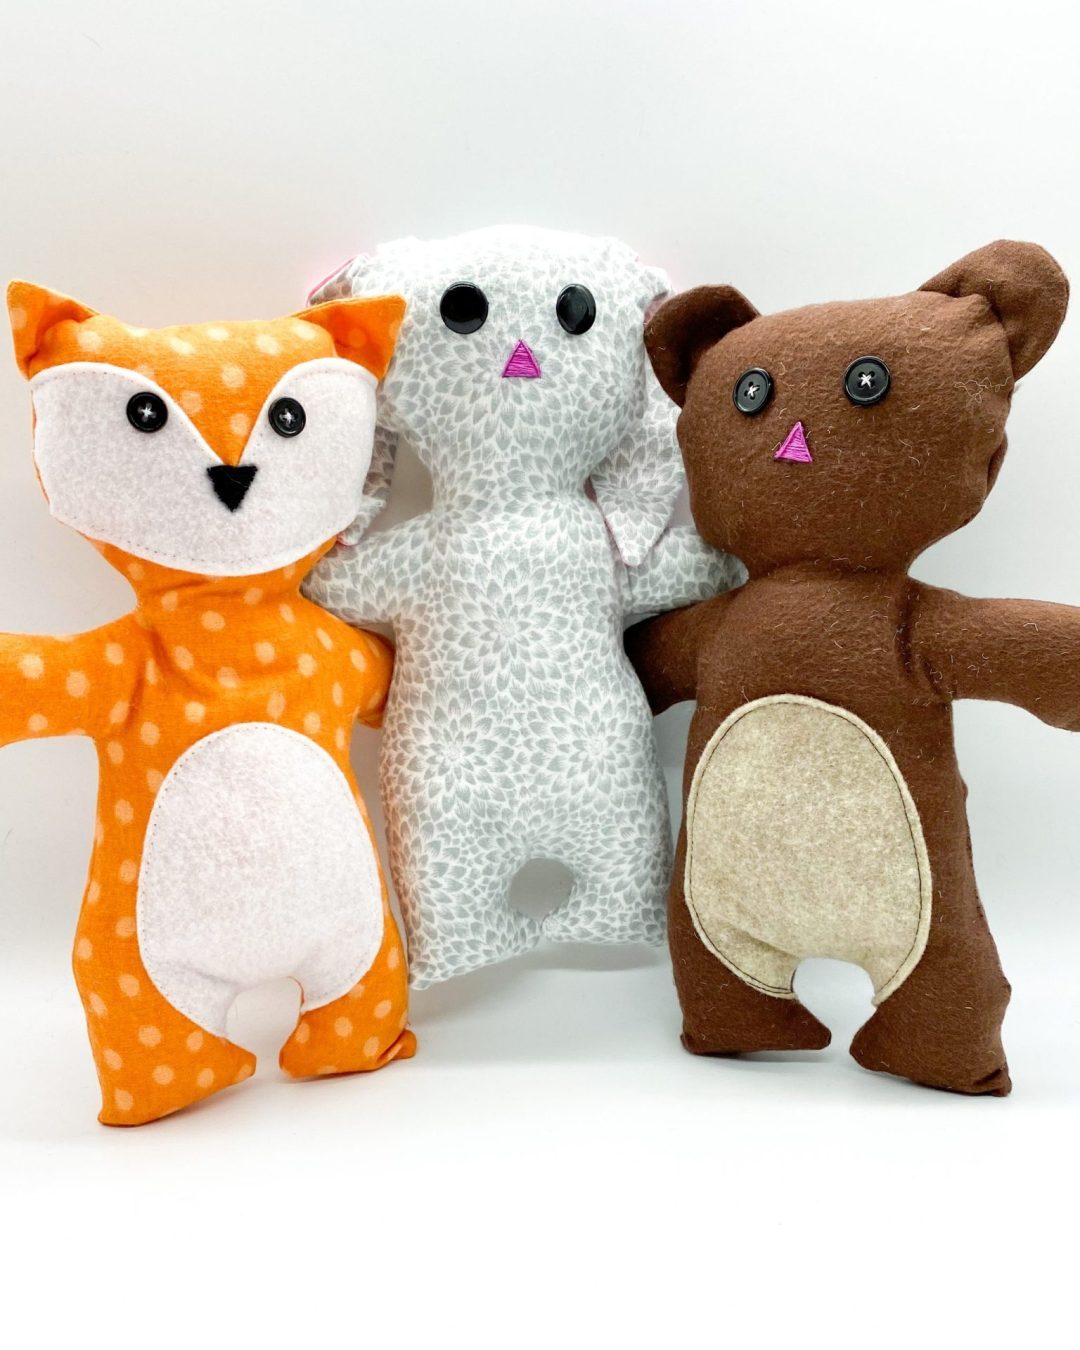 Make a New Friend (or Three!) with P4P Plushie Pals!